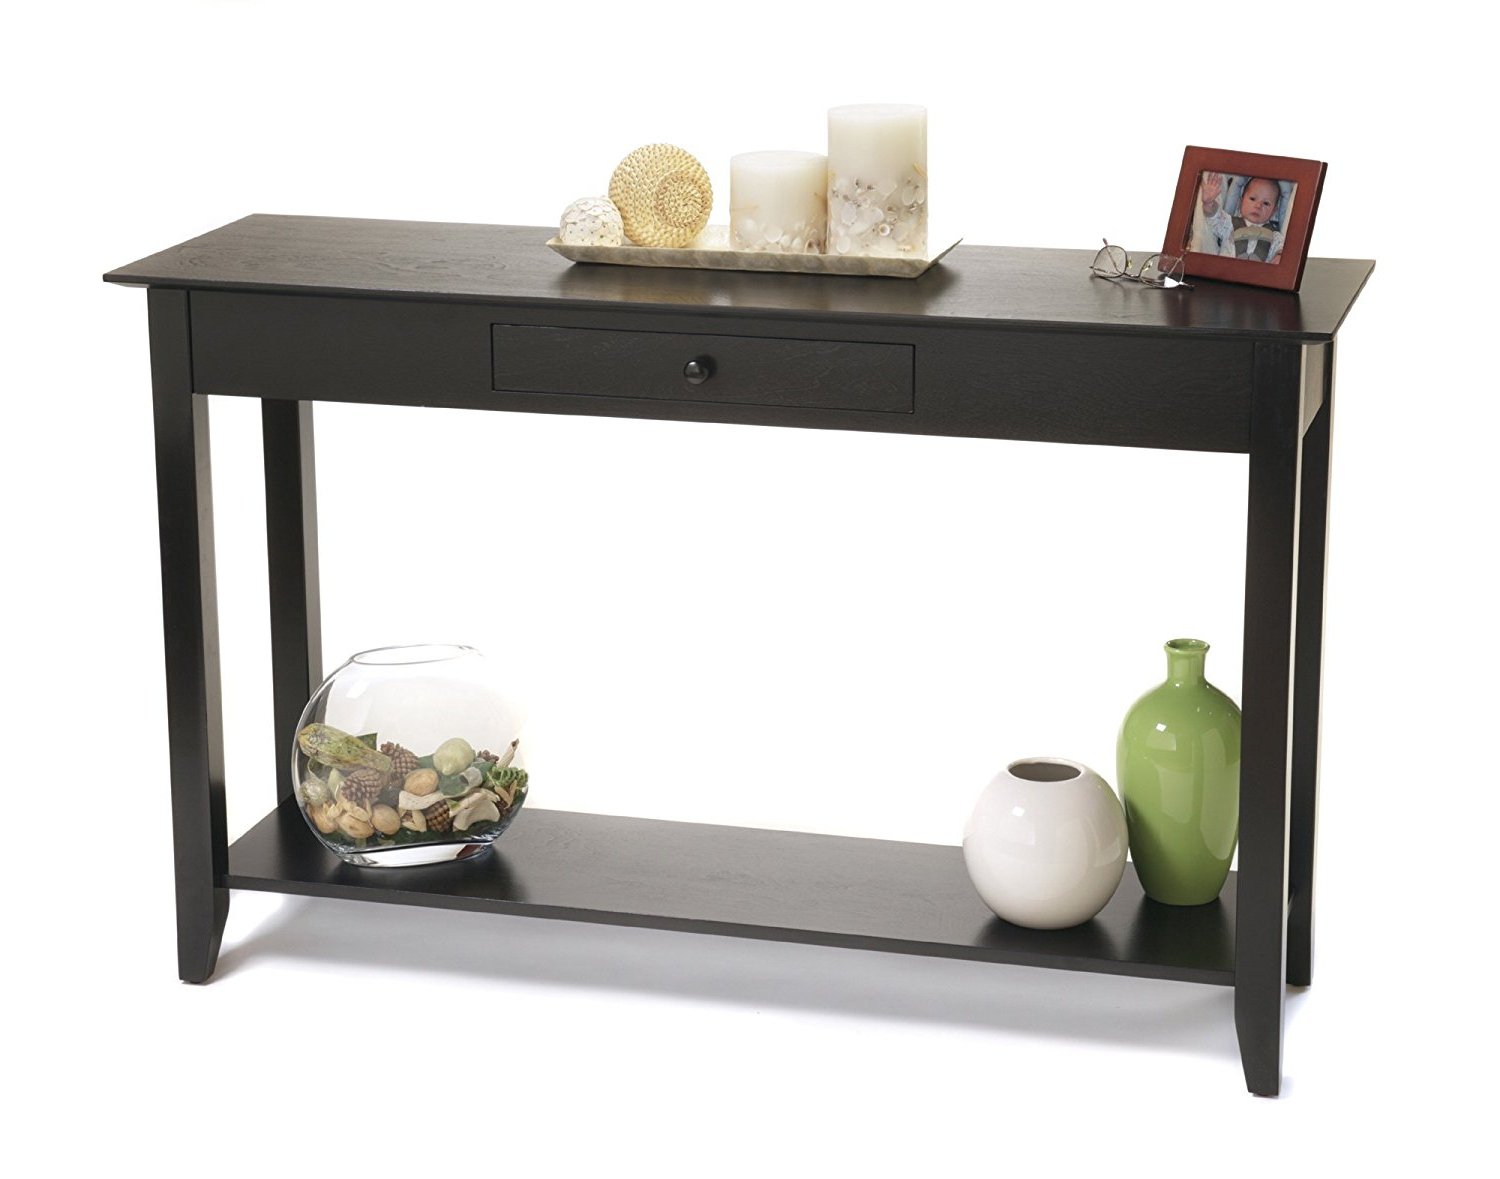 Sofa Table: Amusing Black Sofa Table Ikea Ideas Ikea White Sofa With Parsons Black Marble Top & Brass Base 48X16 Console Tables (Gallery 12 of 20)